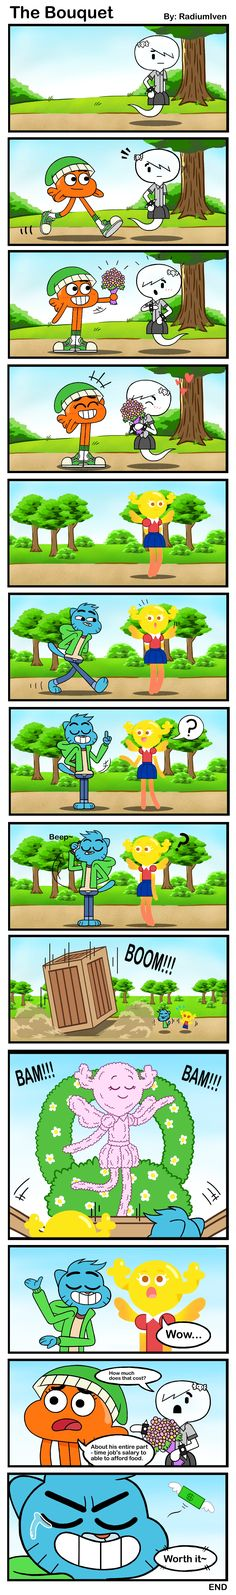 A comic of both brother give their girlfriend a flower bouquet. It was the most tiresome comic ever made. TAWoG FanComic: The Bouquet Cartoon Characters As Humans, Cartoon Tv, Yandere, Carrie, Adventures Of Gumball, Amazing Gumball, Cartoon Network Shows, Cartoon Crossovers, World Of Gumball